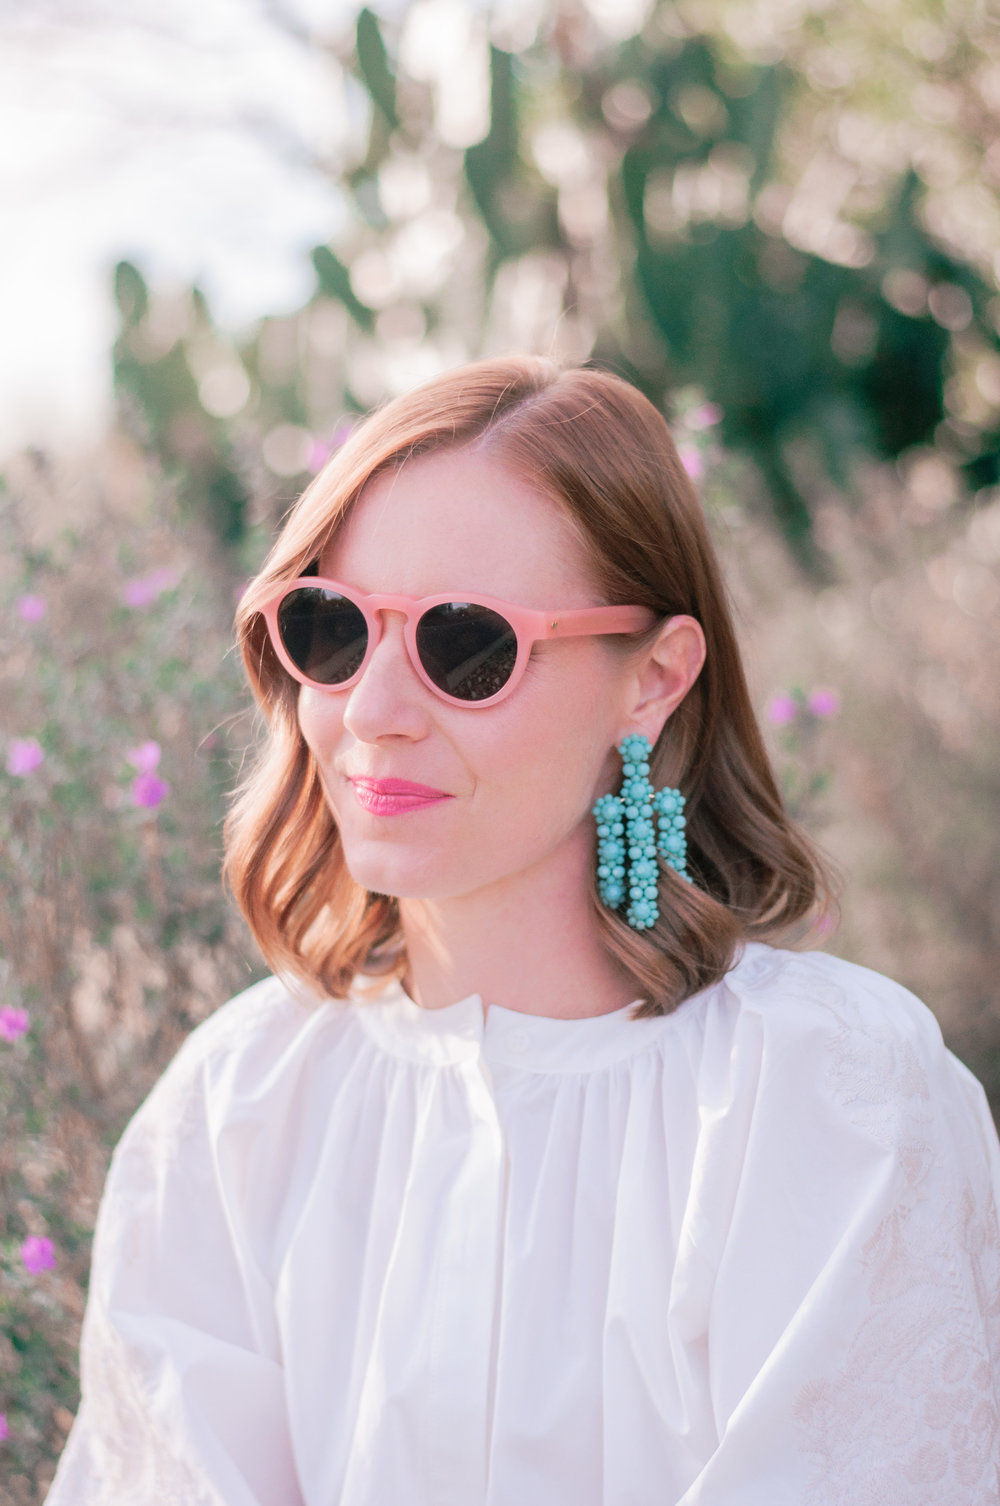 Kate Spade The Bead Goes On Statement Earrings in Turquoise, J.Crew Pink Sunglasses